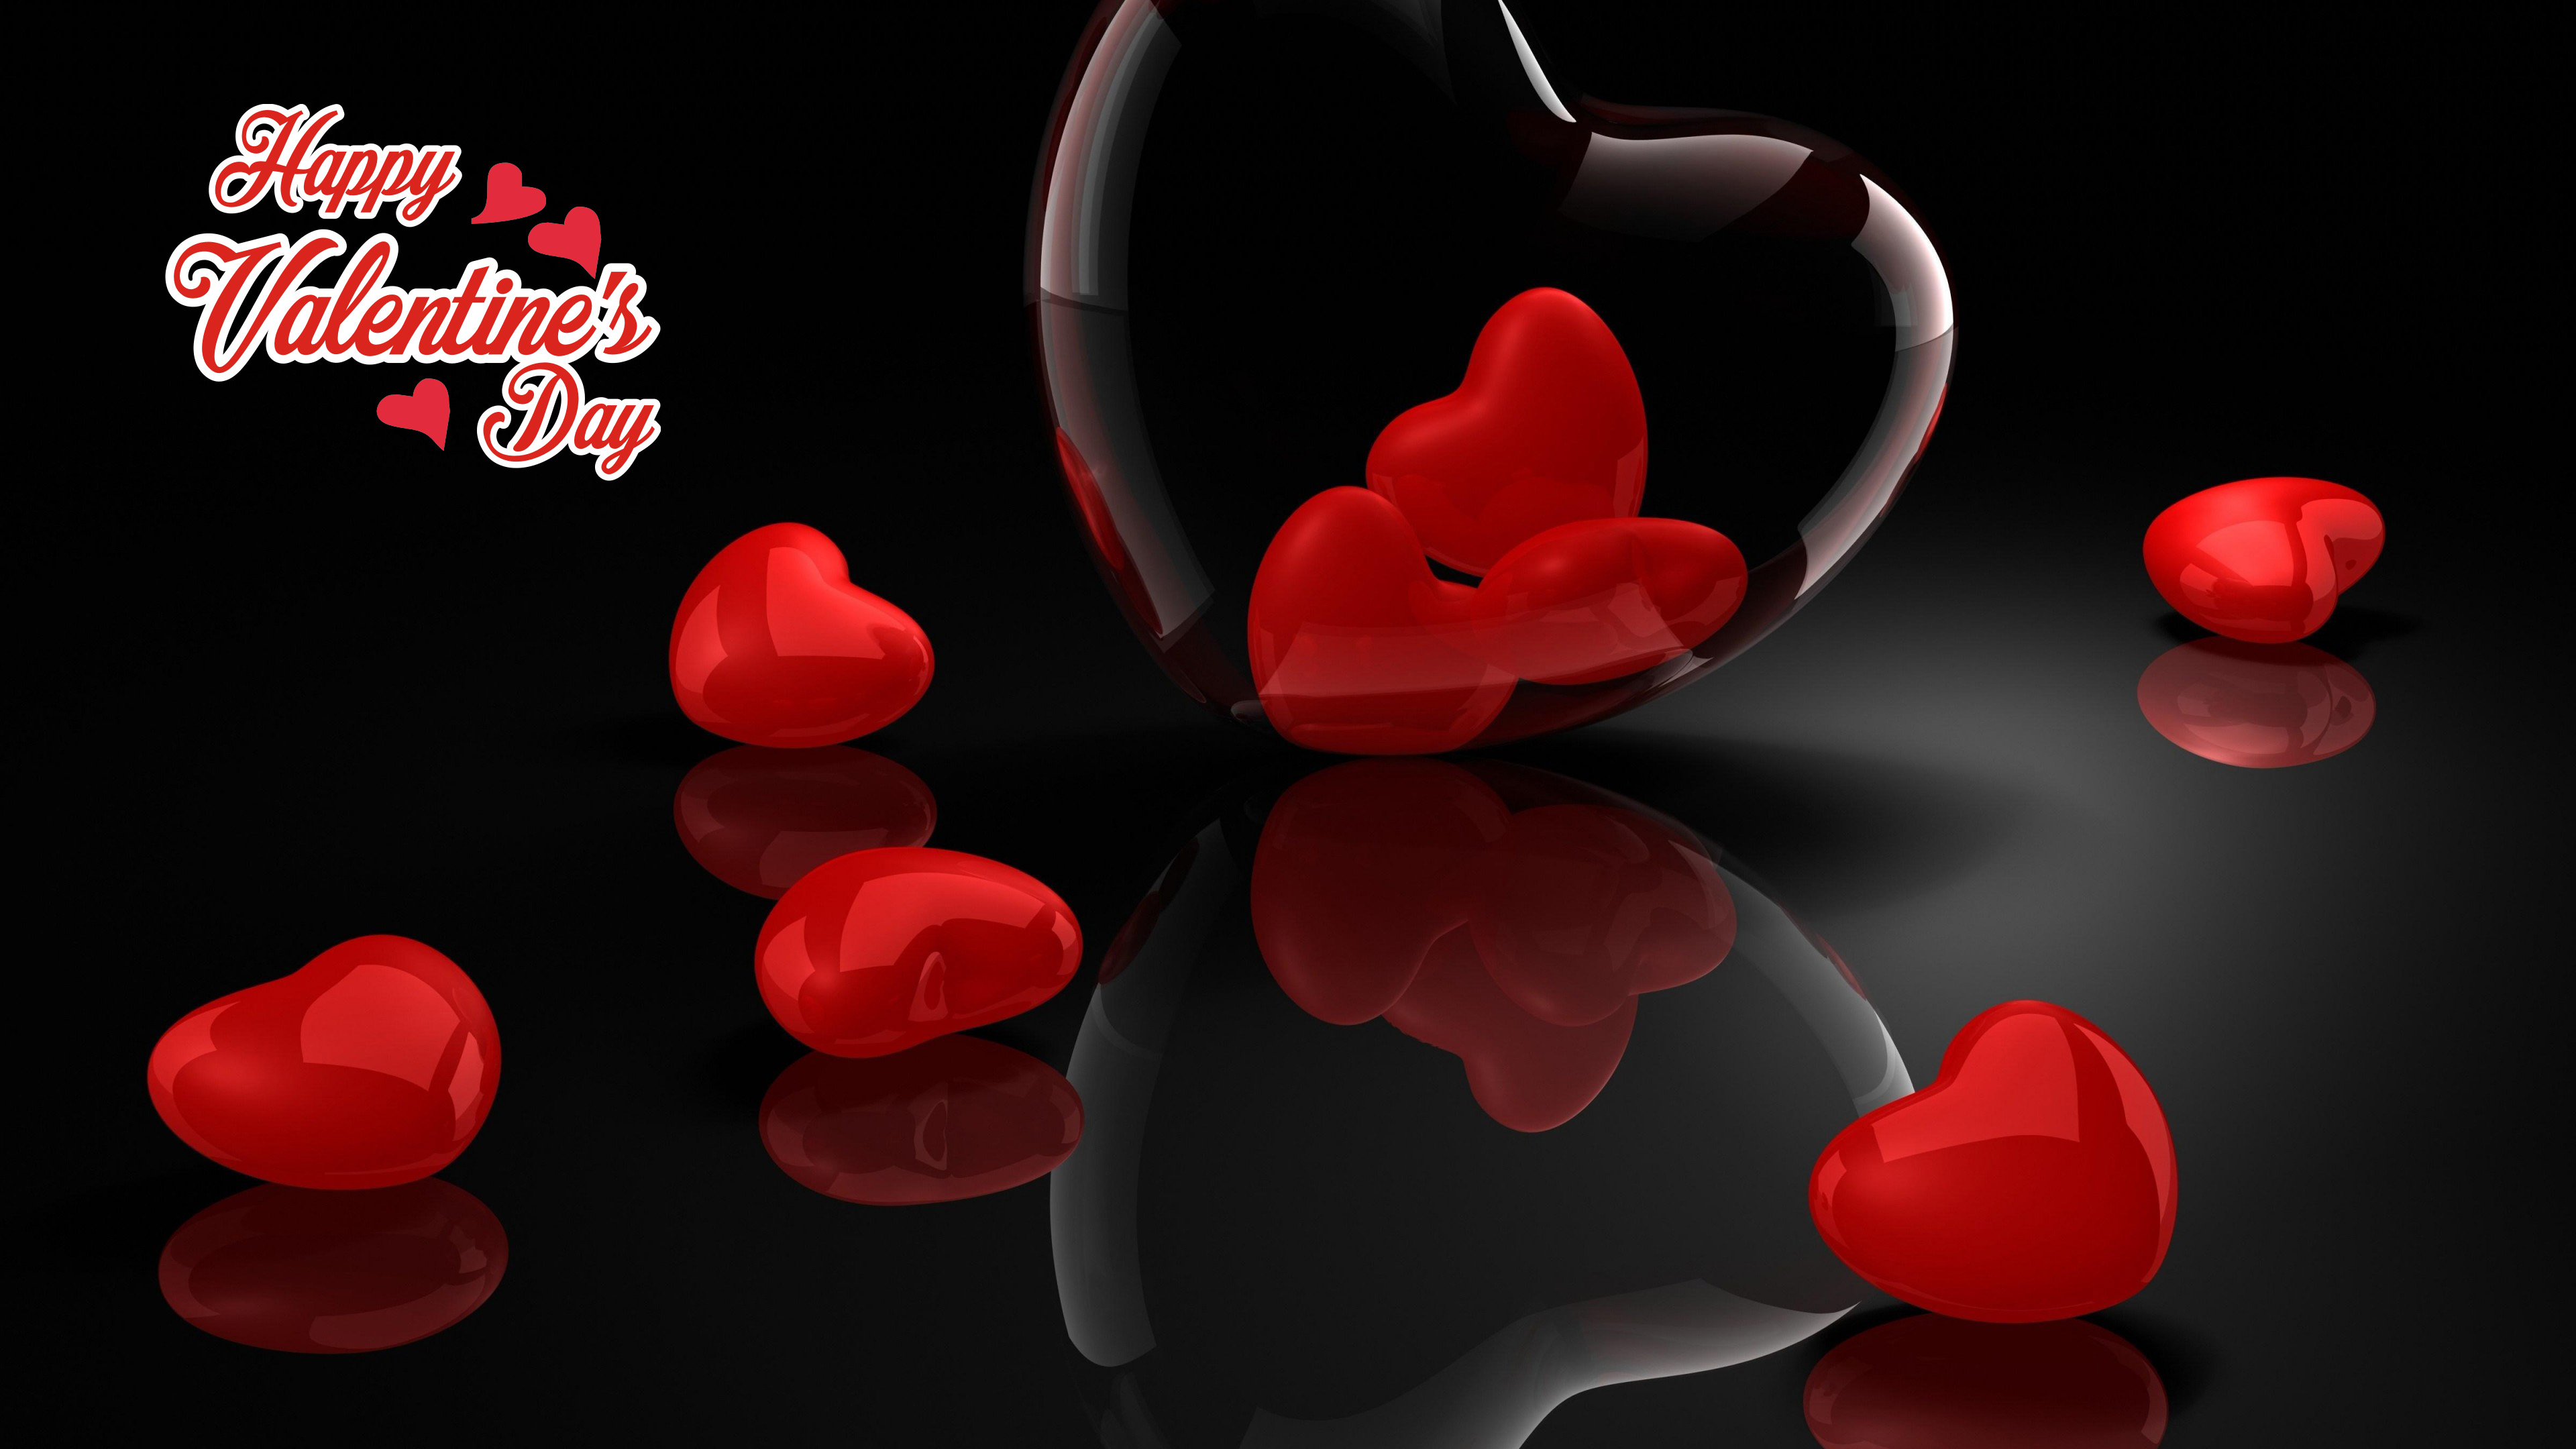 happy valentines day heart glass 3d reflection large background hd wallpaper